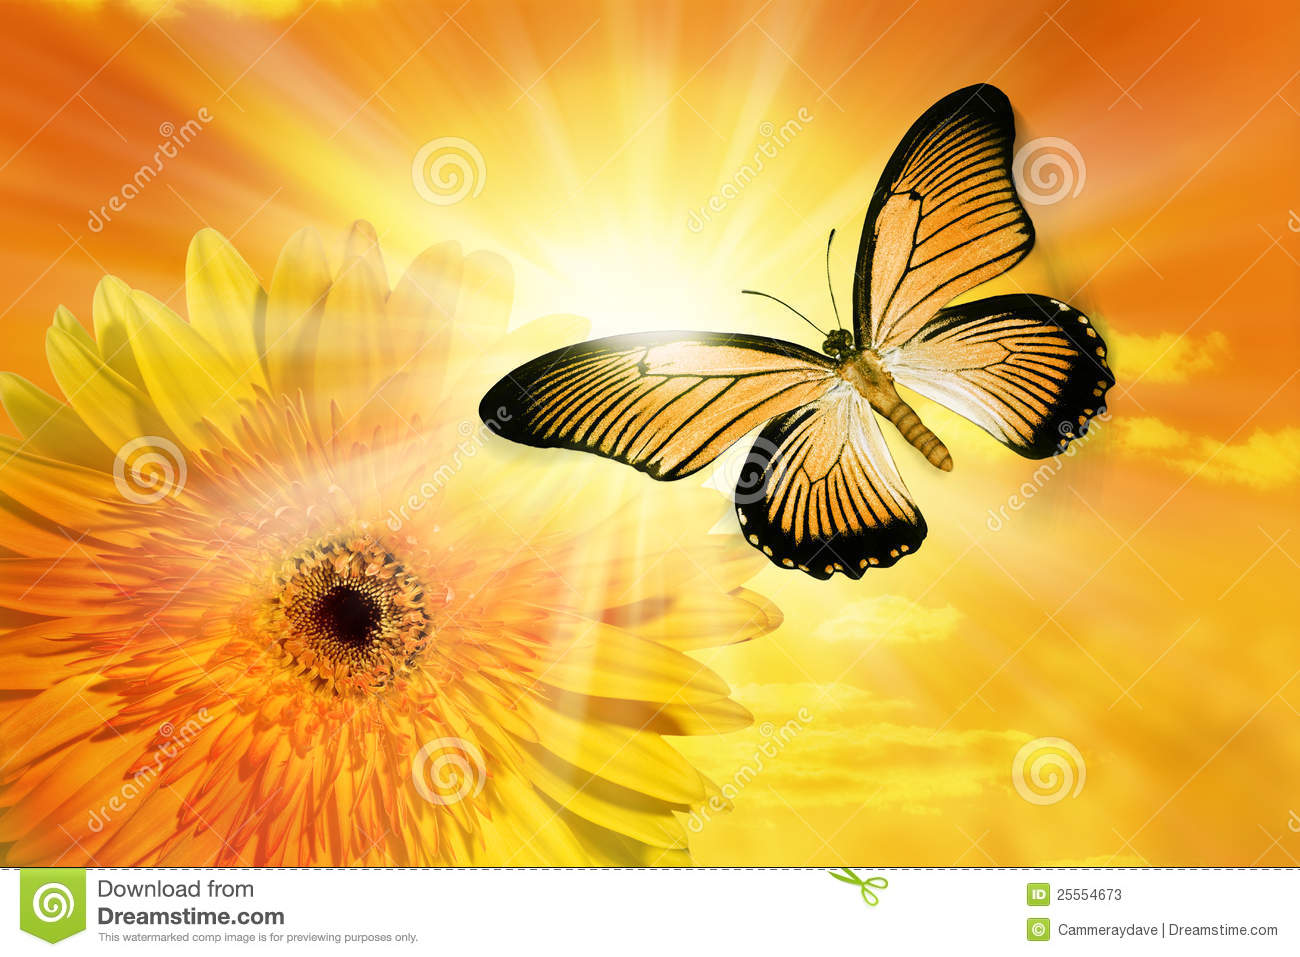 Flower sun sky butterfly stock photos image 25554673 - Doek voor de zon ...